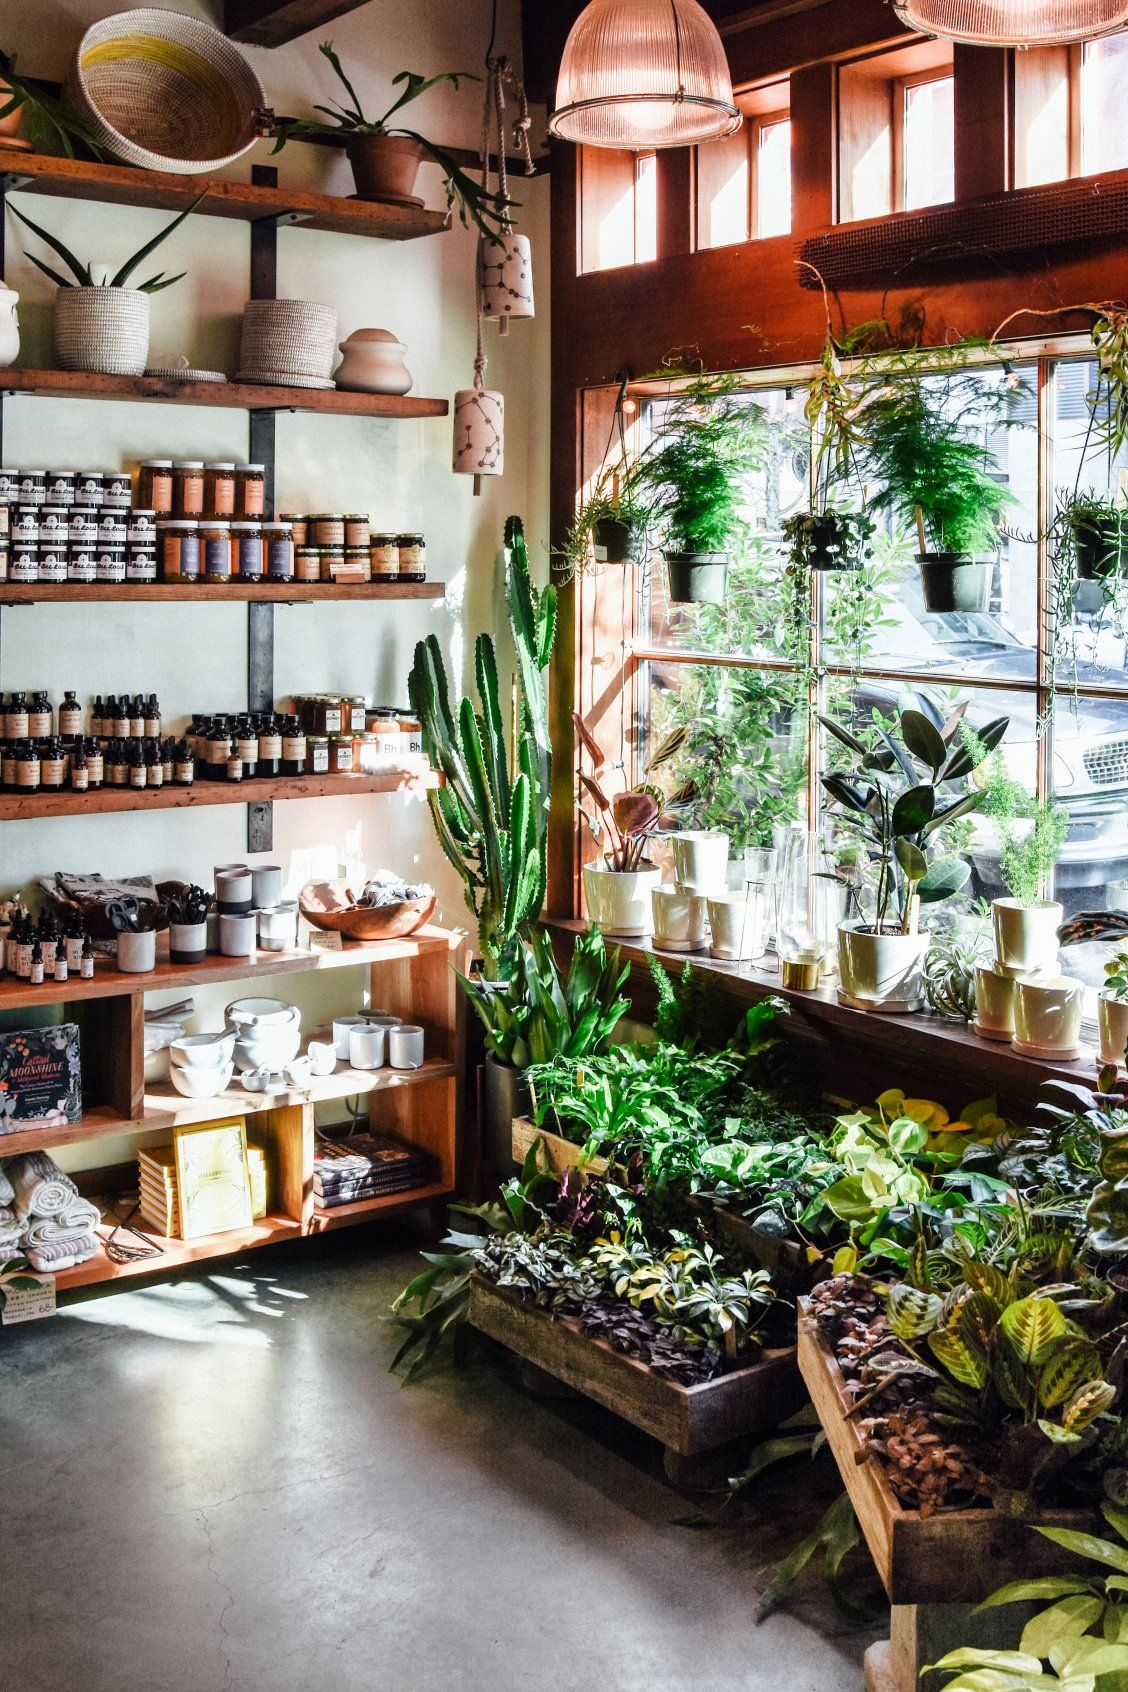 faa90255d98e Calling all plant lovers: Bring the outside in with greenery galore from  this Portland-based specialty nursery.